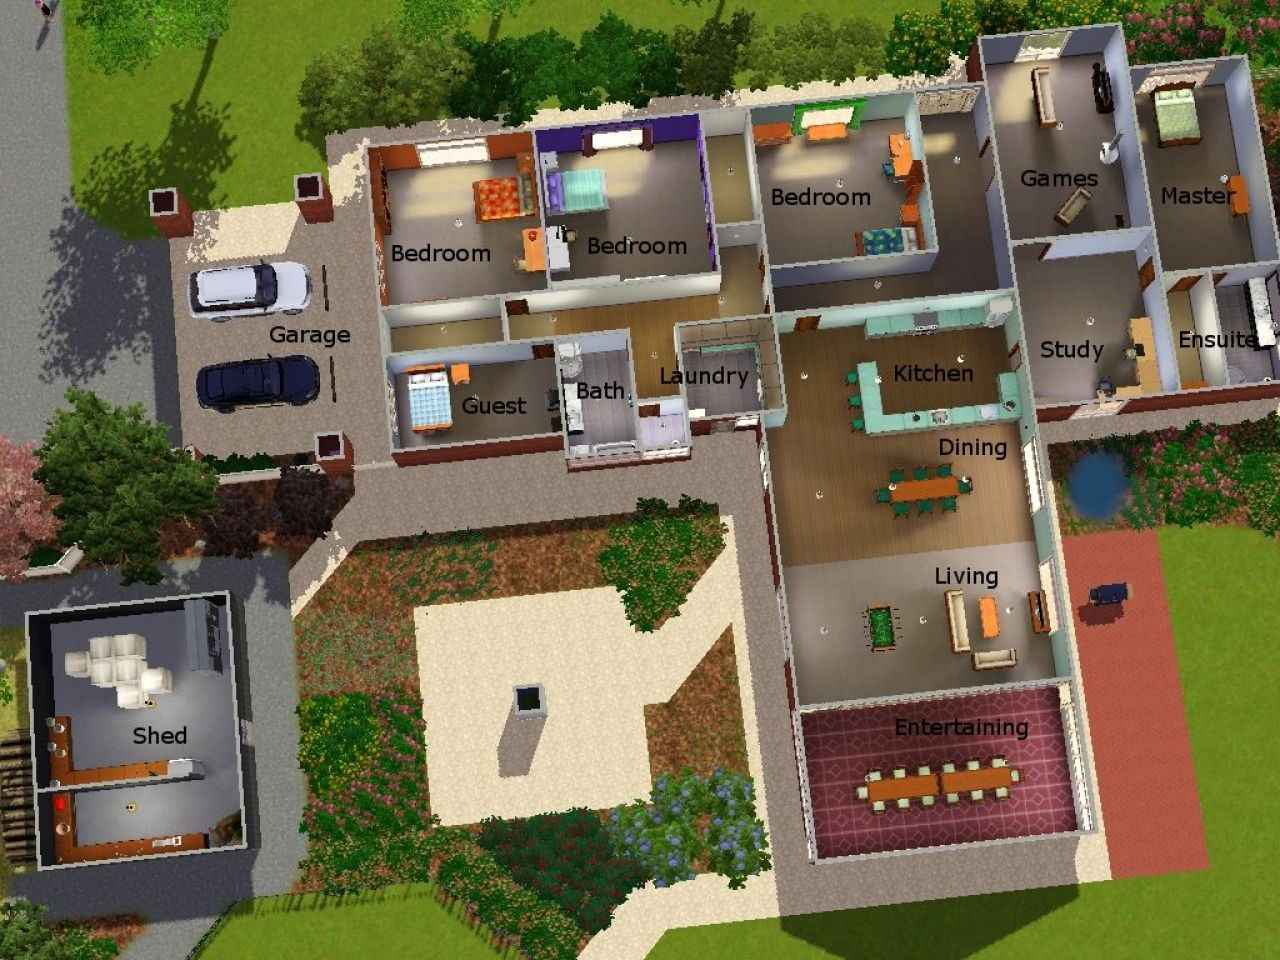 House layouts for sims 3 | House plans and ideas | Pinterest ...